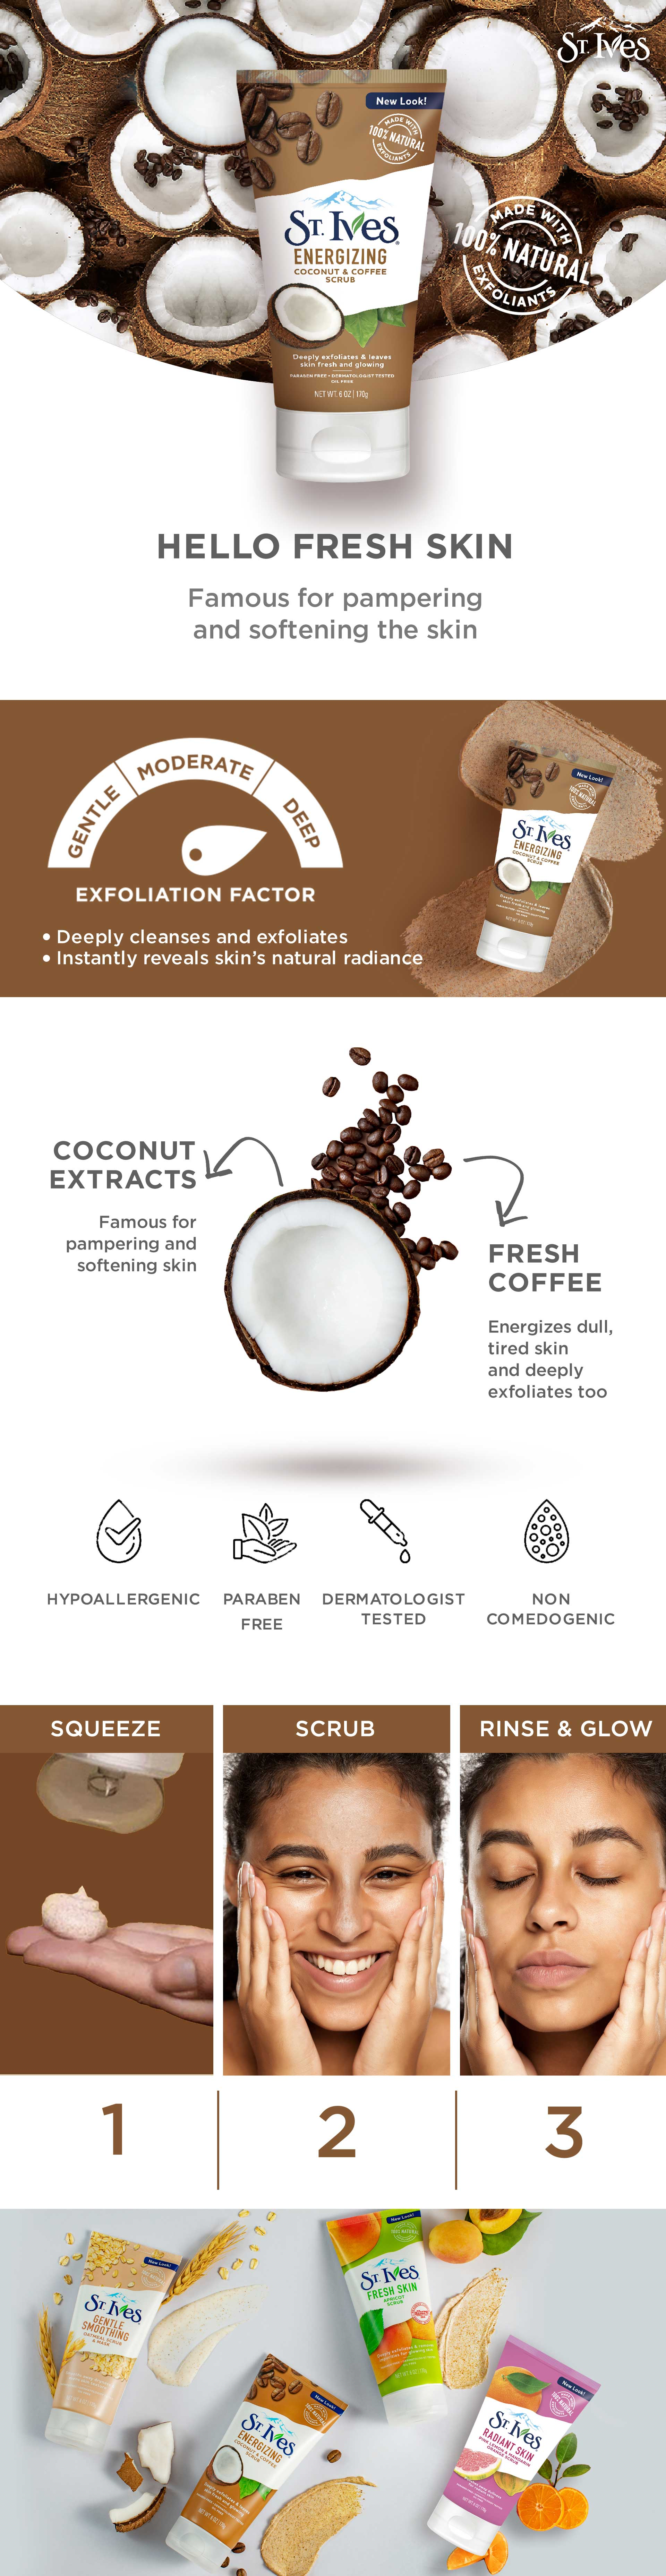 St Ives Energizing Coconut Coffee Scrub Buy St Ives Energizing Coconut Coffee Scrub Online At Best Price In India Nykaaman